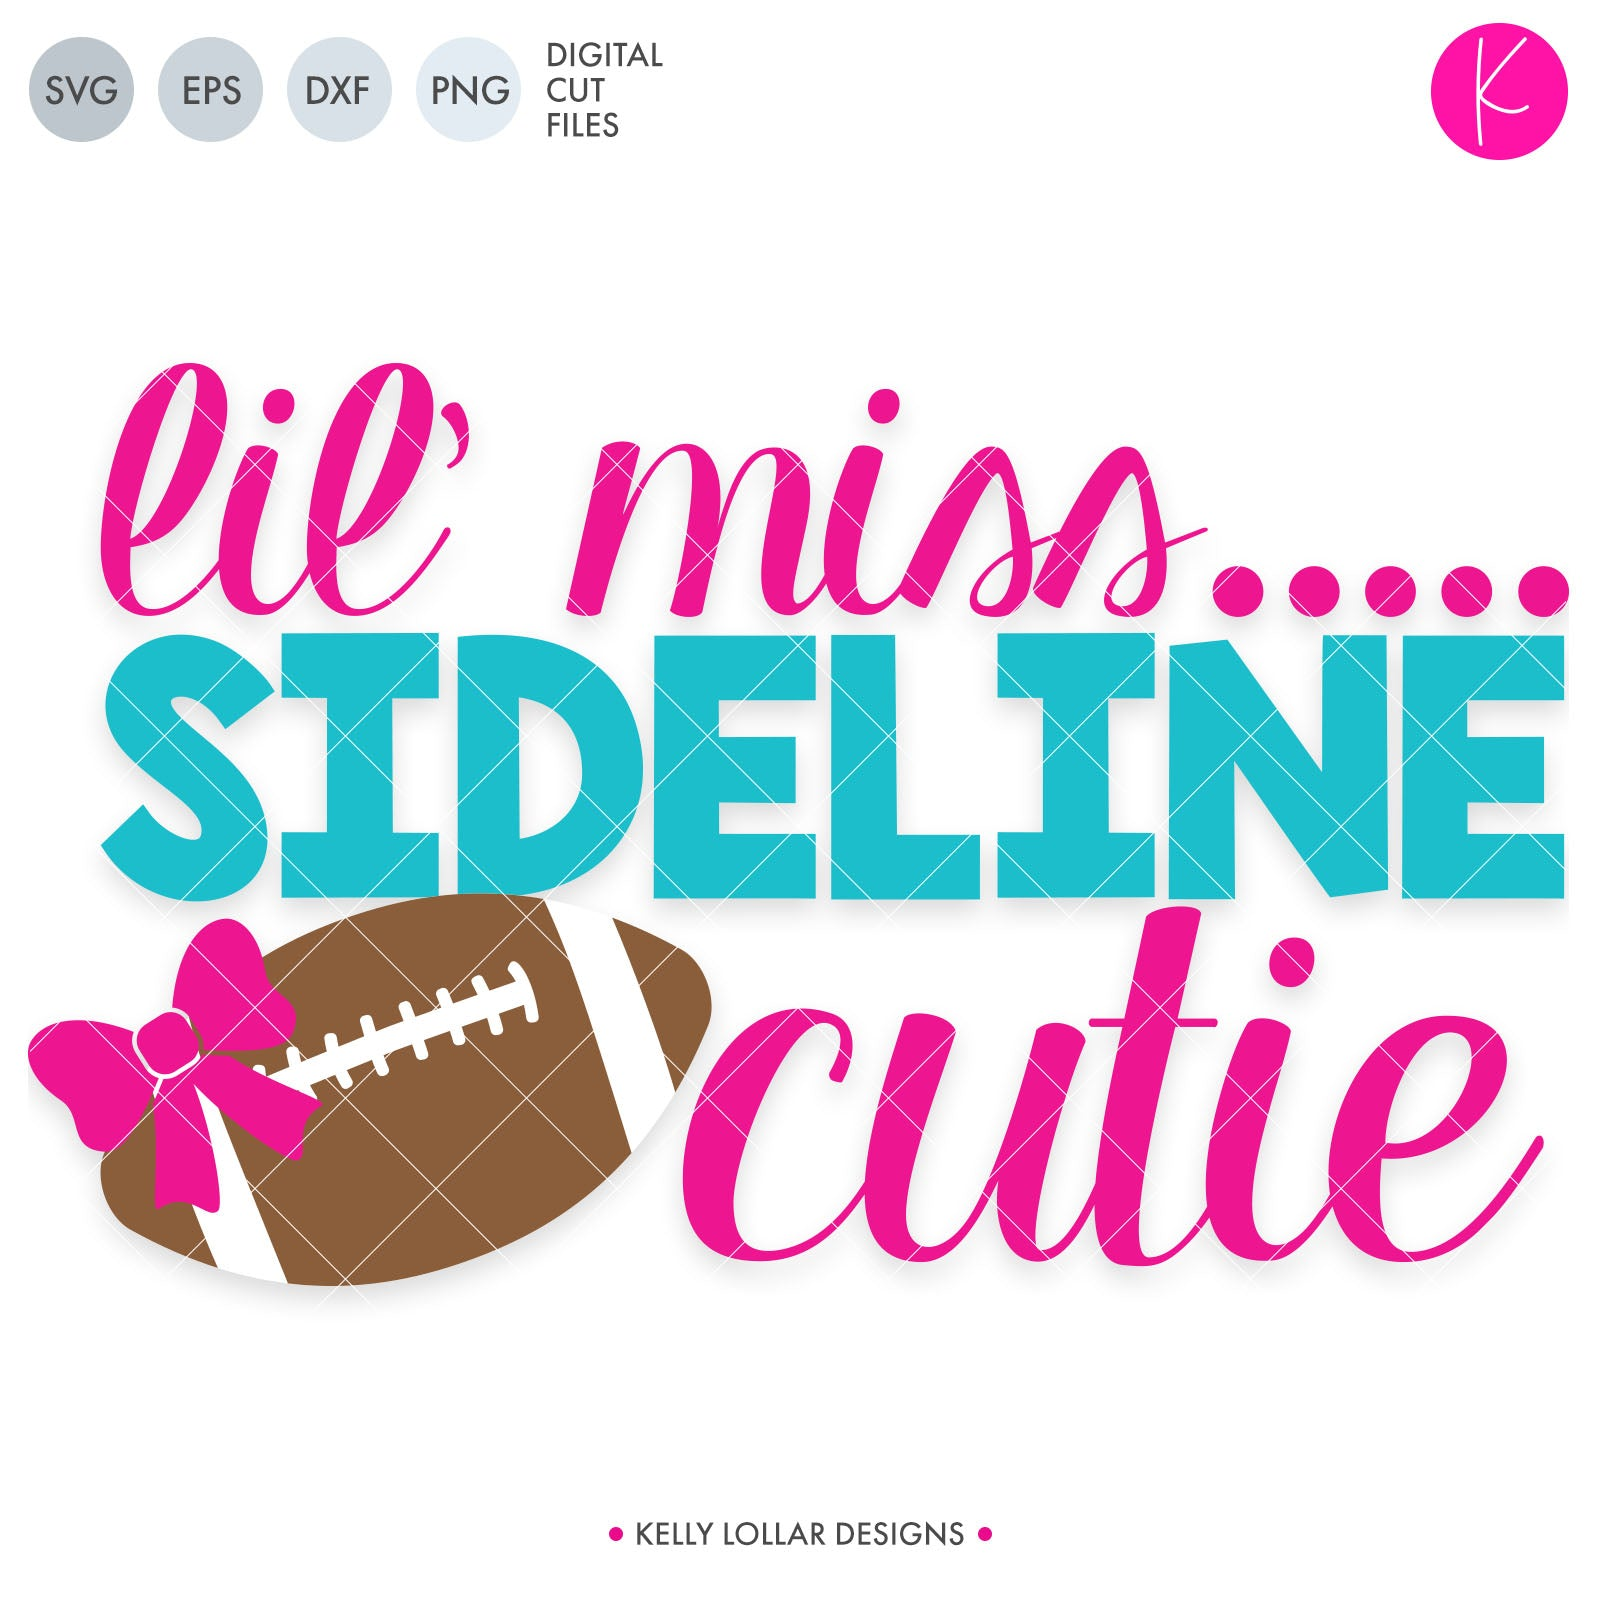 Lil' Miss Sideline Cutie | SVG DXF EPS PNG Cut Files Little Girl Game Day Quote in Chunky Script and Print Fonts and Football with Bow | SVG DXF PNG Cut Files 1 file for each format welded in 6 pieces